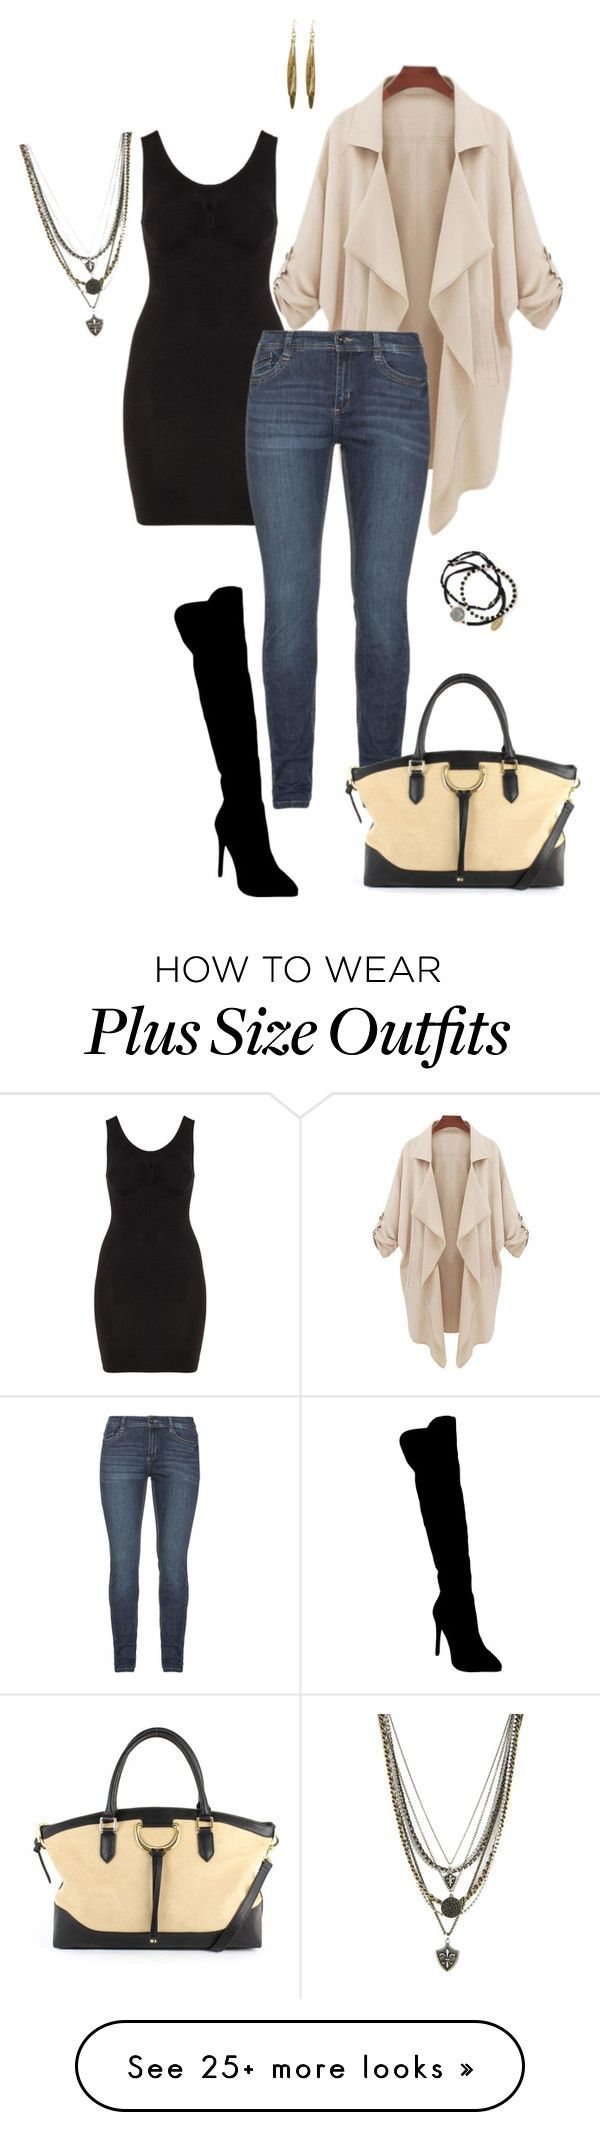 """Wear it anyway- plus size"" by gchamama on Polyvore featuring Atmos&Here, London Fog, Ettika, Feather & Stone and Towne & Reese"